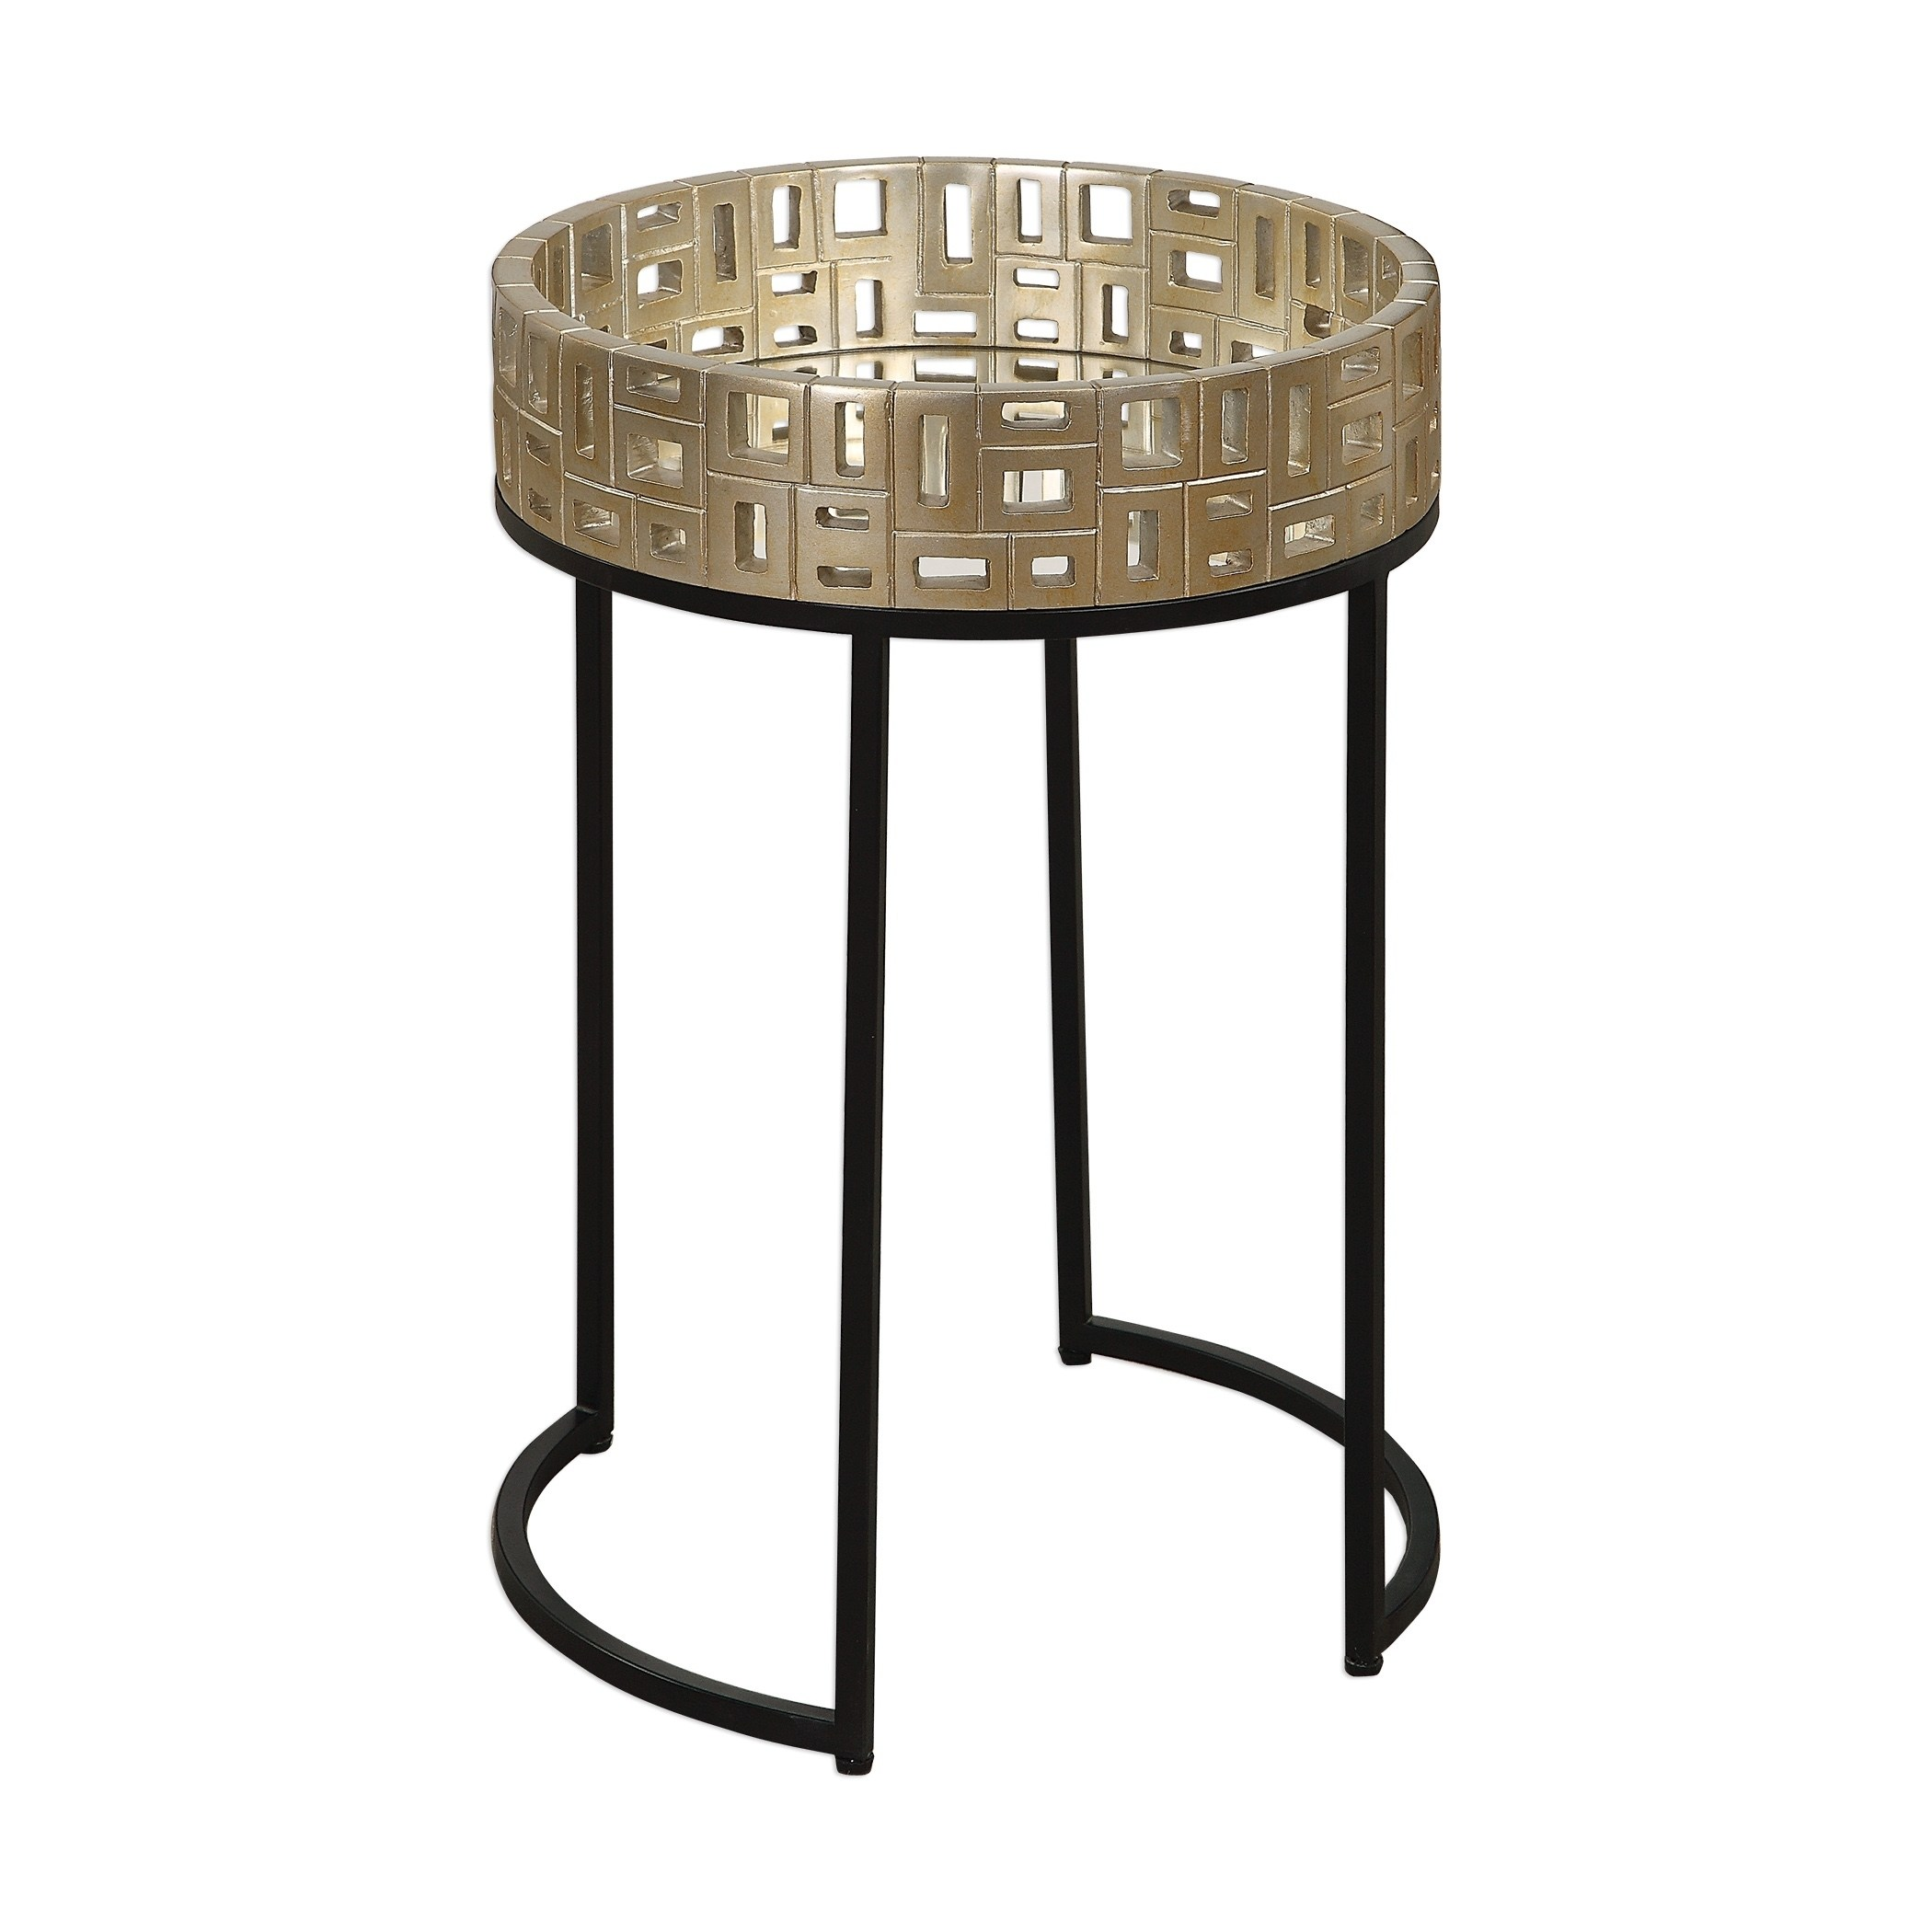 uttermost aven aged black and champagne gold accent table mcm side umbrellas that provide shade simple quilted runner patterns thin behind couch counter height console marble top